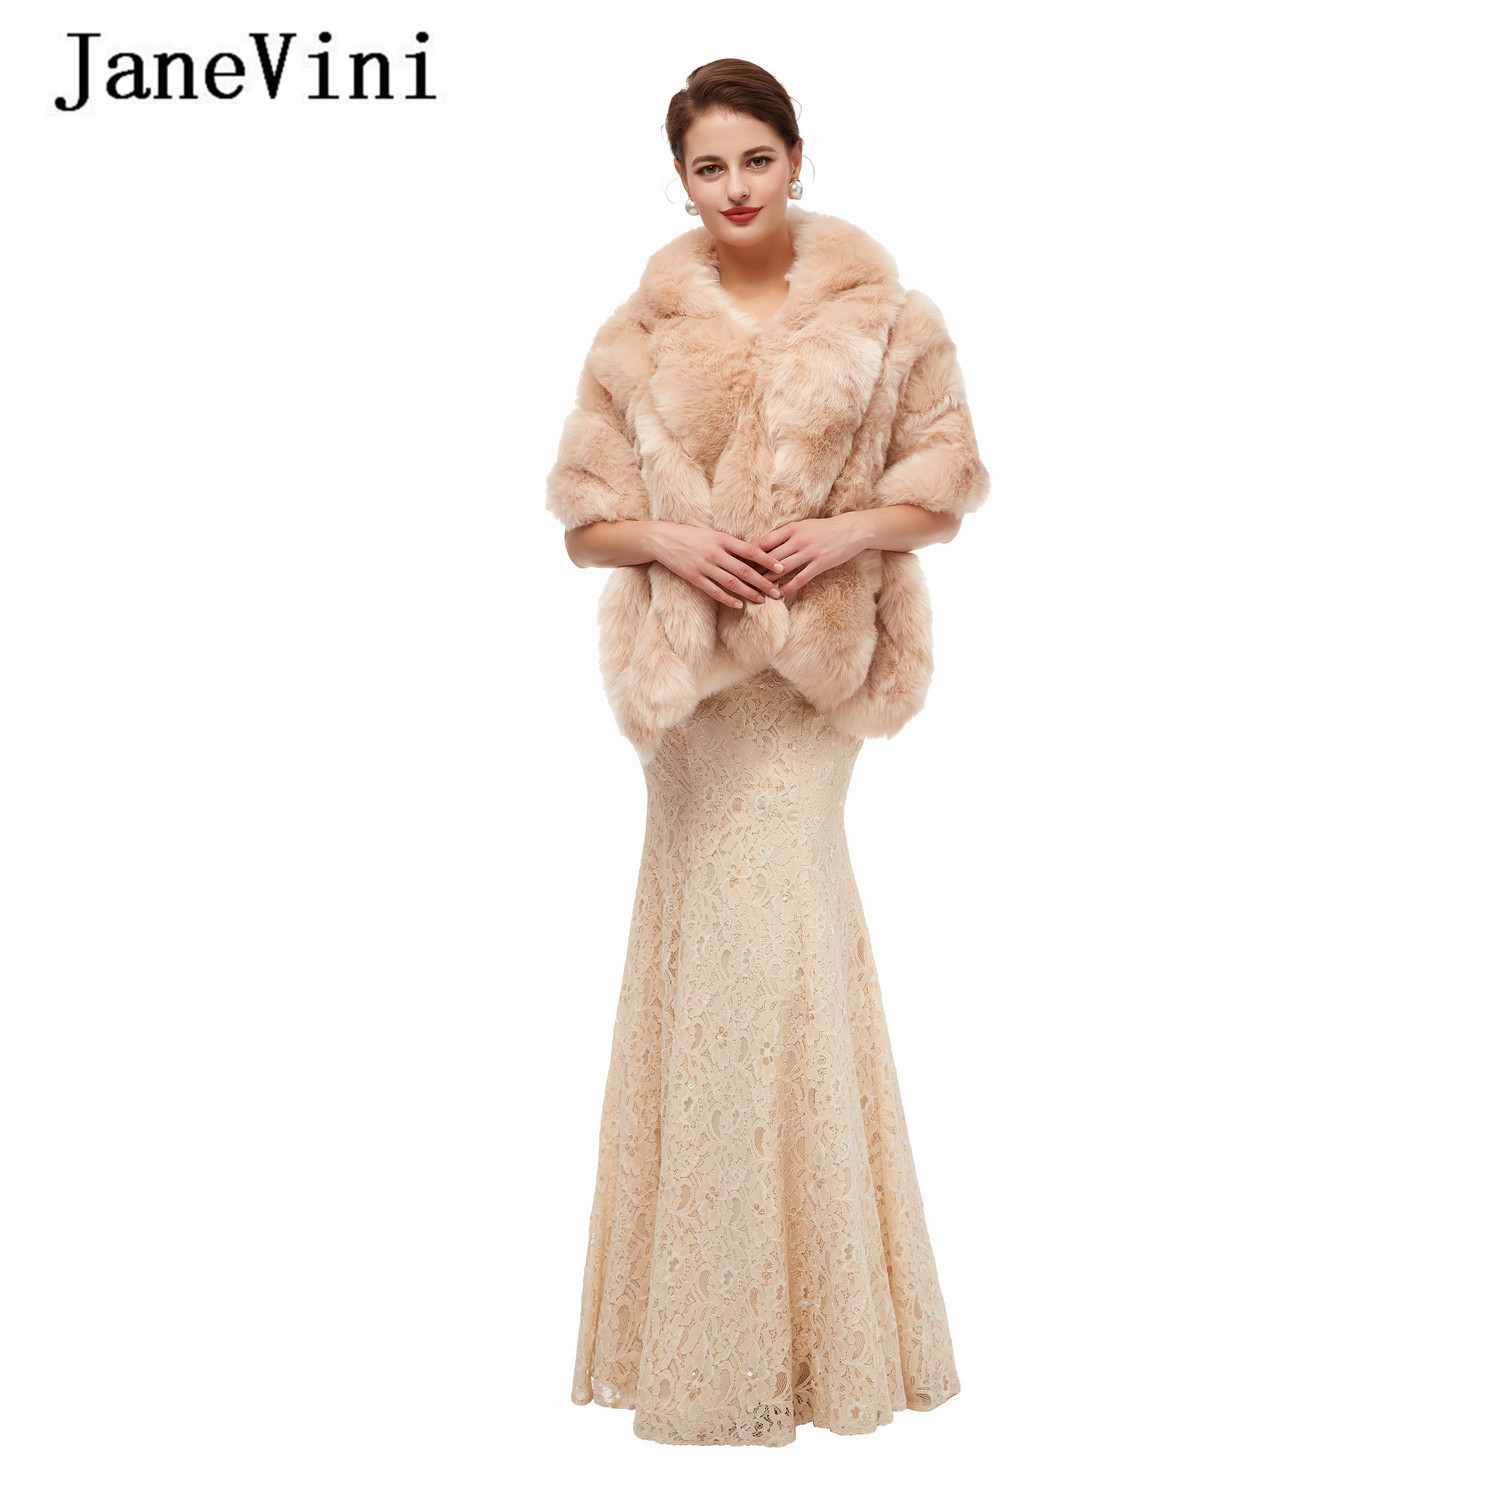 JaneVini 2020 Elegant Winter Women Shrugs Wedding Shoulder Cape Bridal Faux Fur Wrap Shawl Warm Evening Party Bolero Accessories